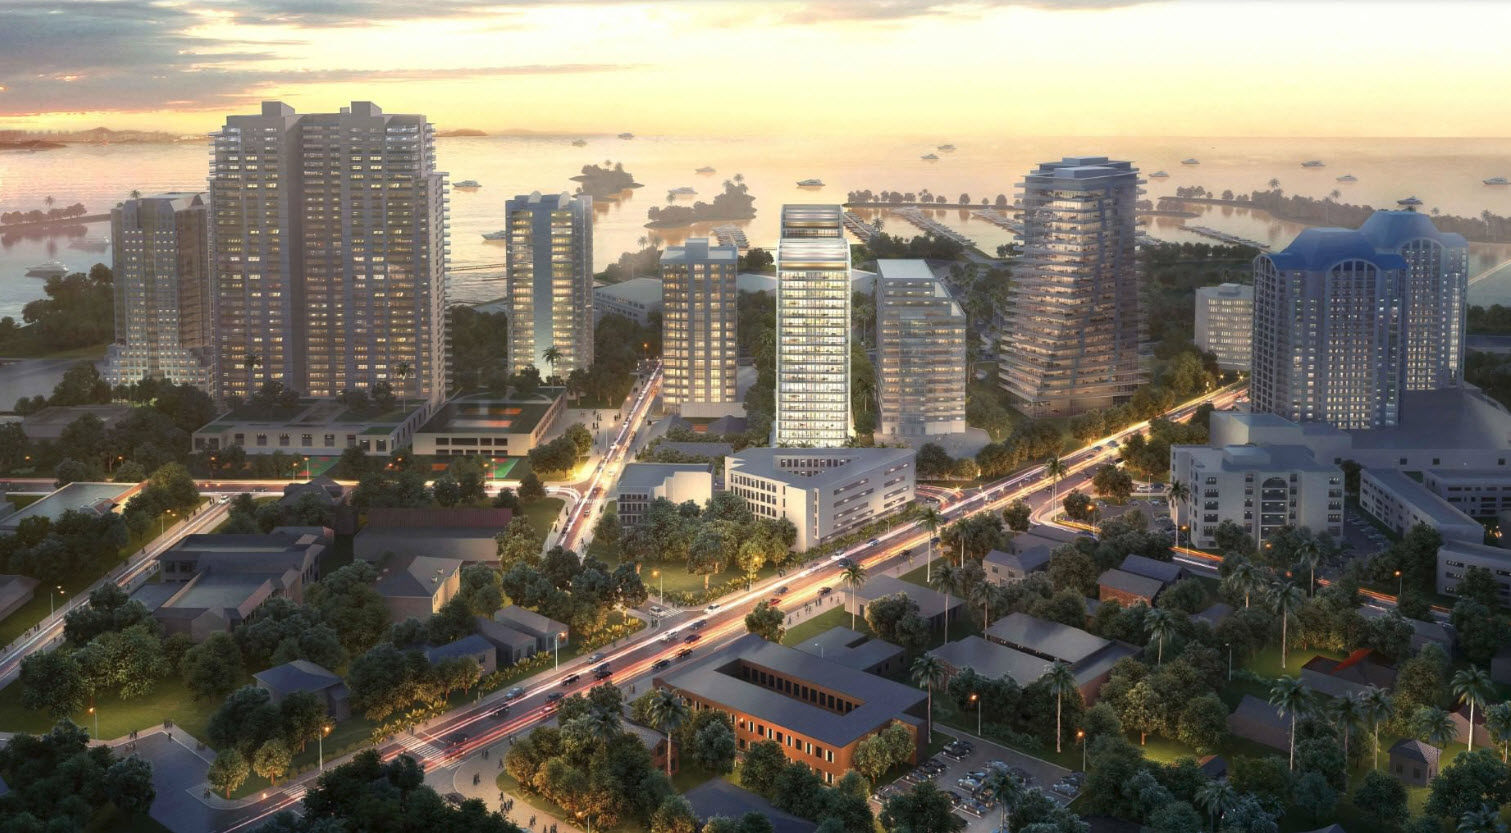 Rendering of Coconut Grove Skyline with Summerhill Coconut Grove